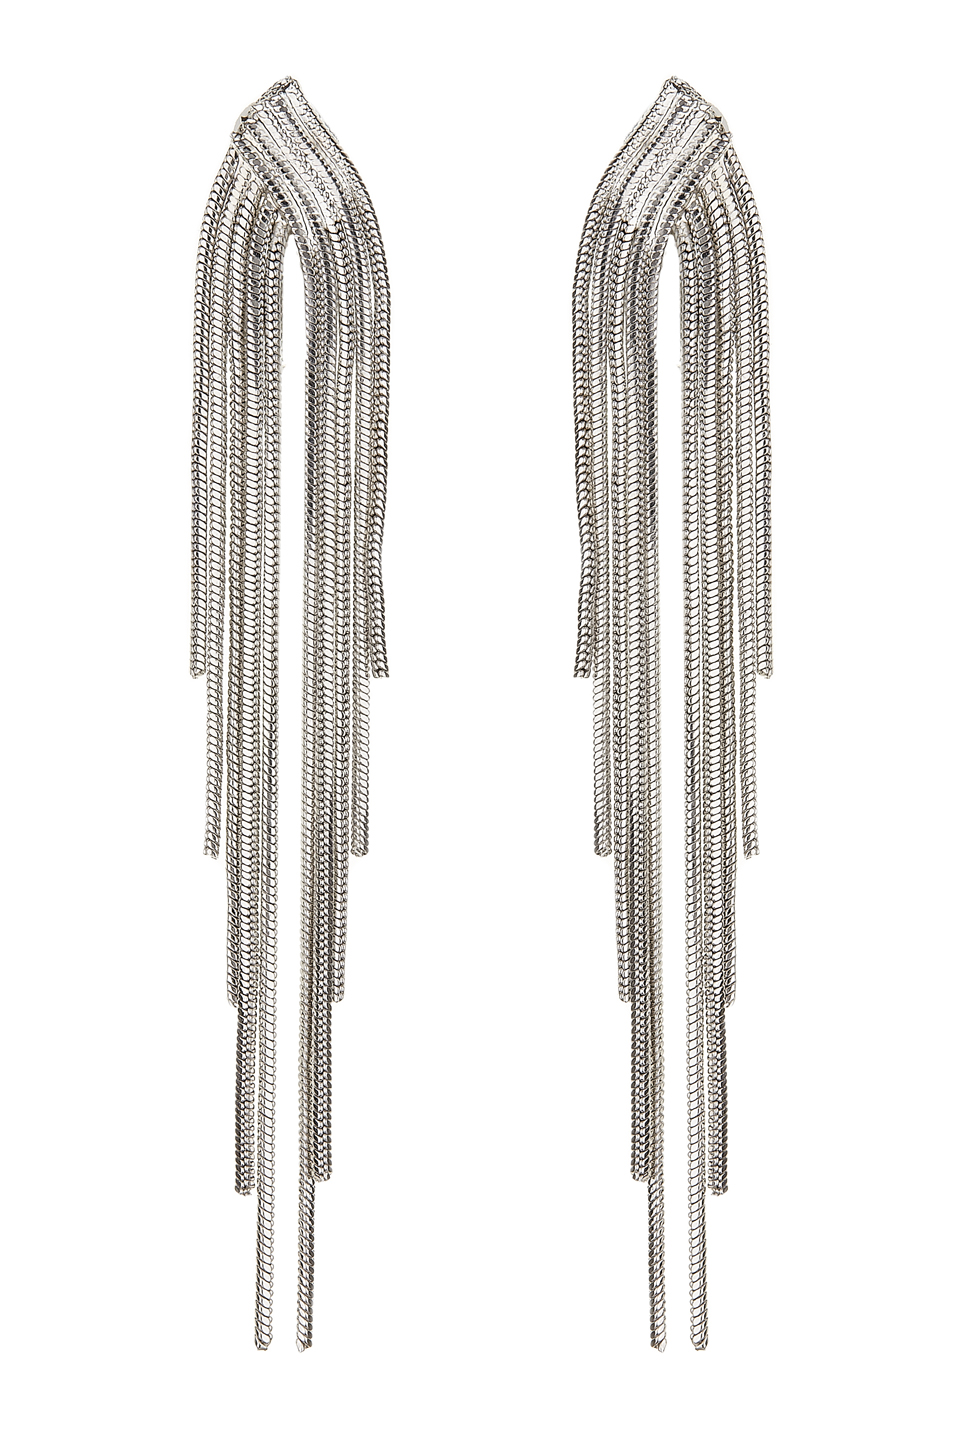 Clip On Earrings - Bracha S - silver earring with strands